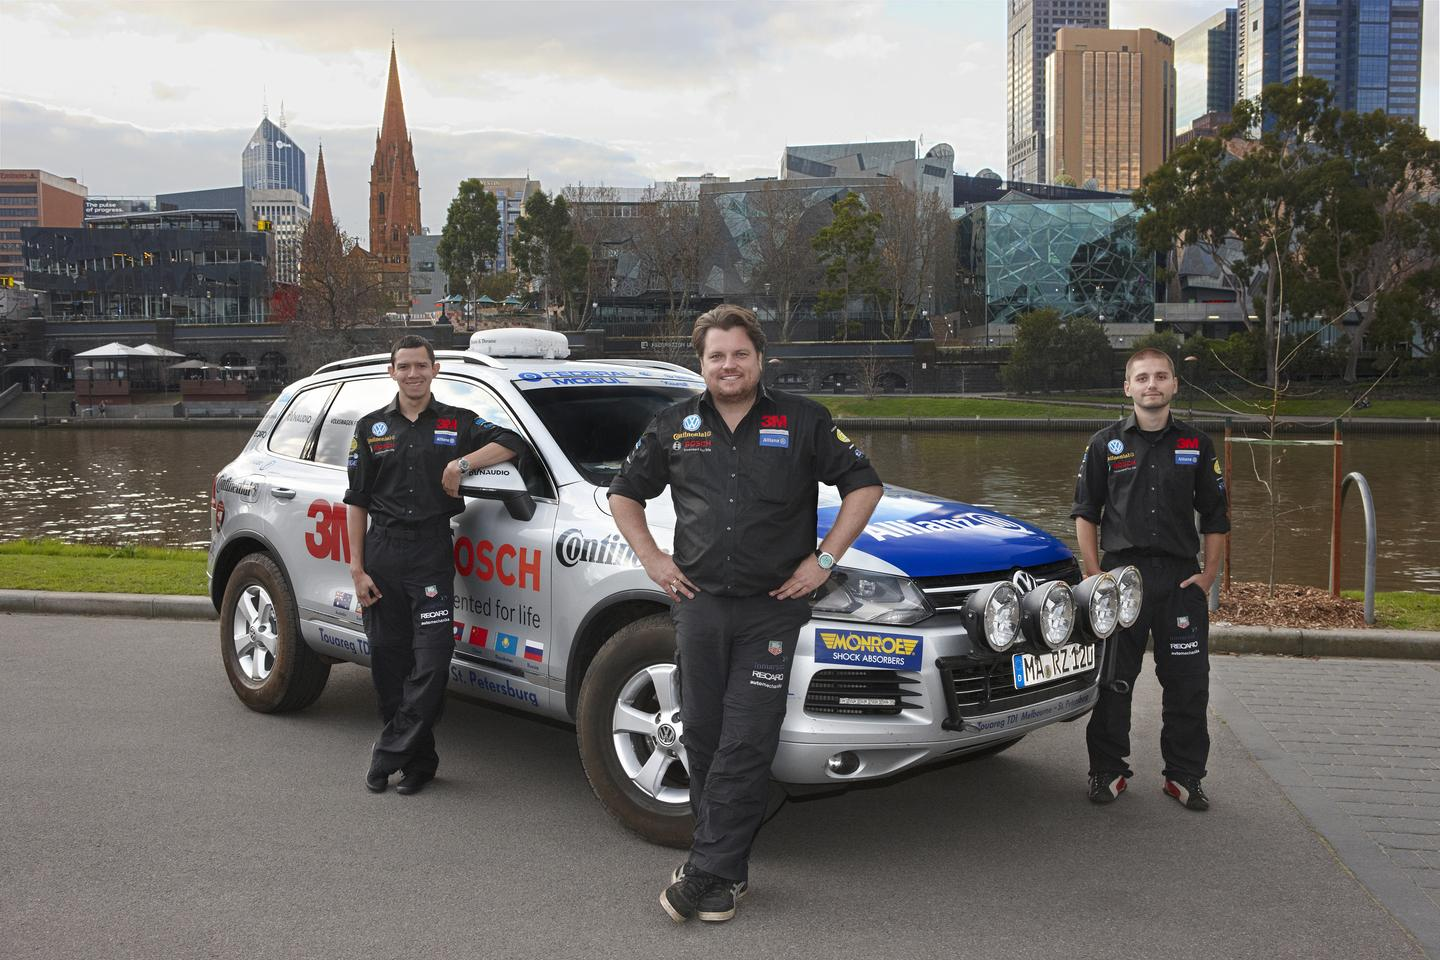 The Challenge4 team of Rainer Zietlow, Vlaimir Gagarin and Marius Biela on the banks of the Yarra River in Melbourne